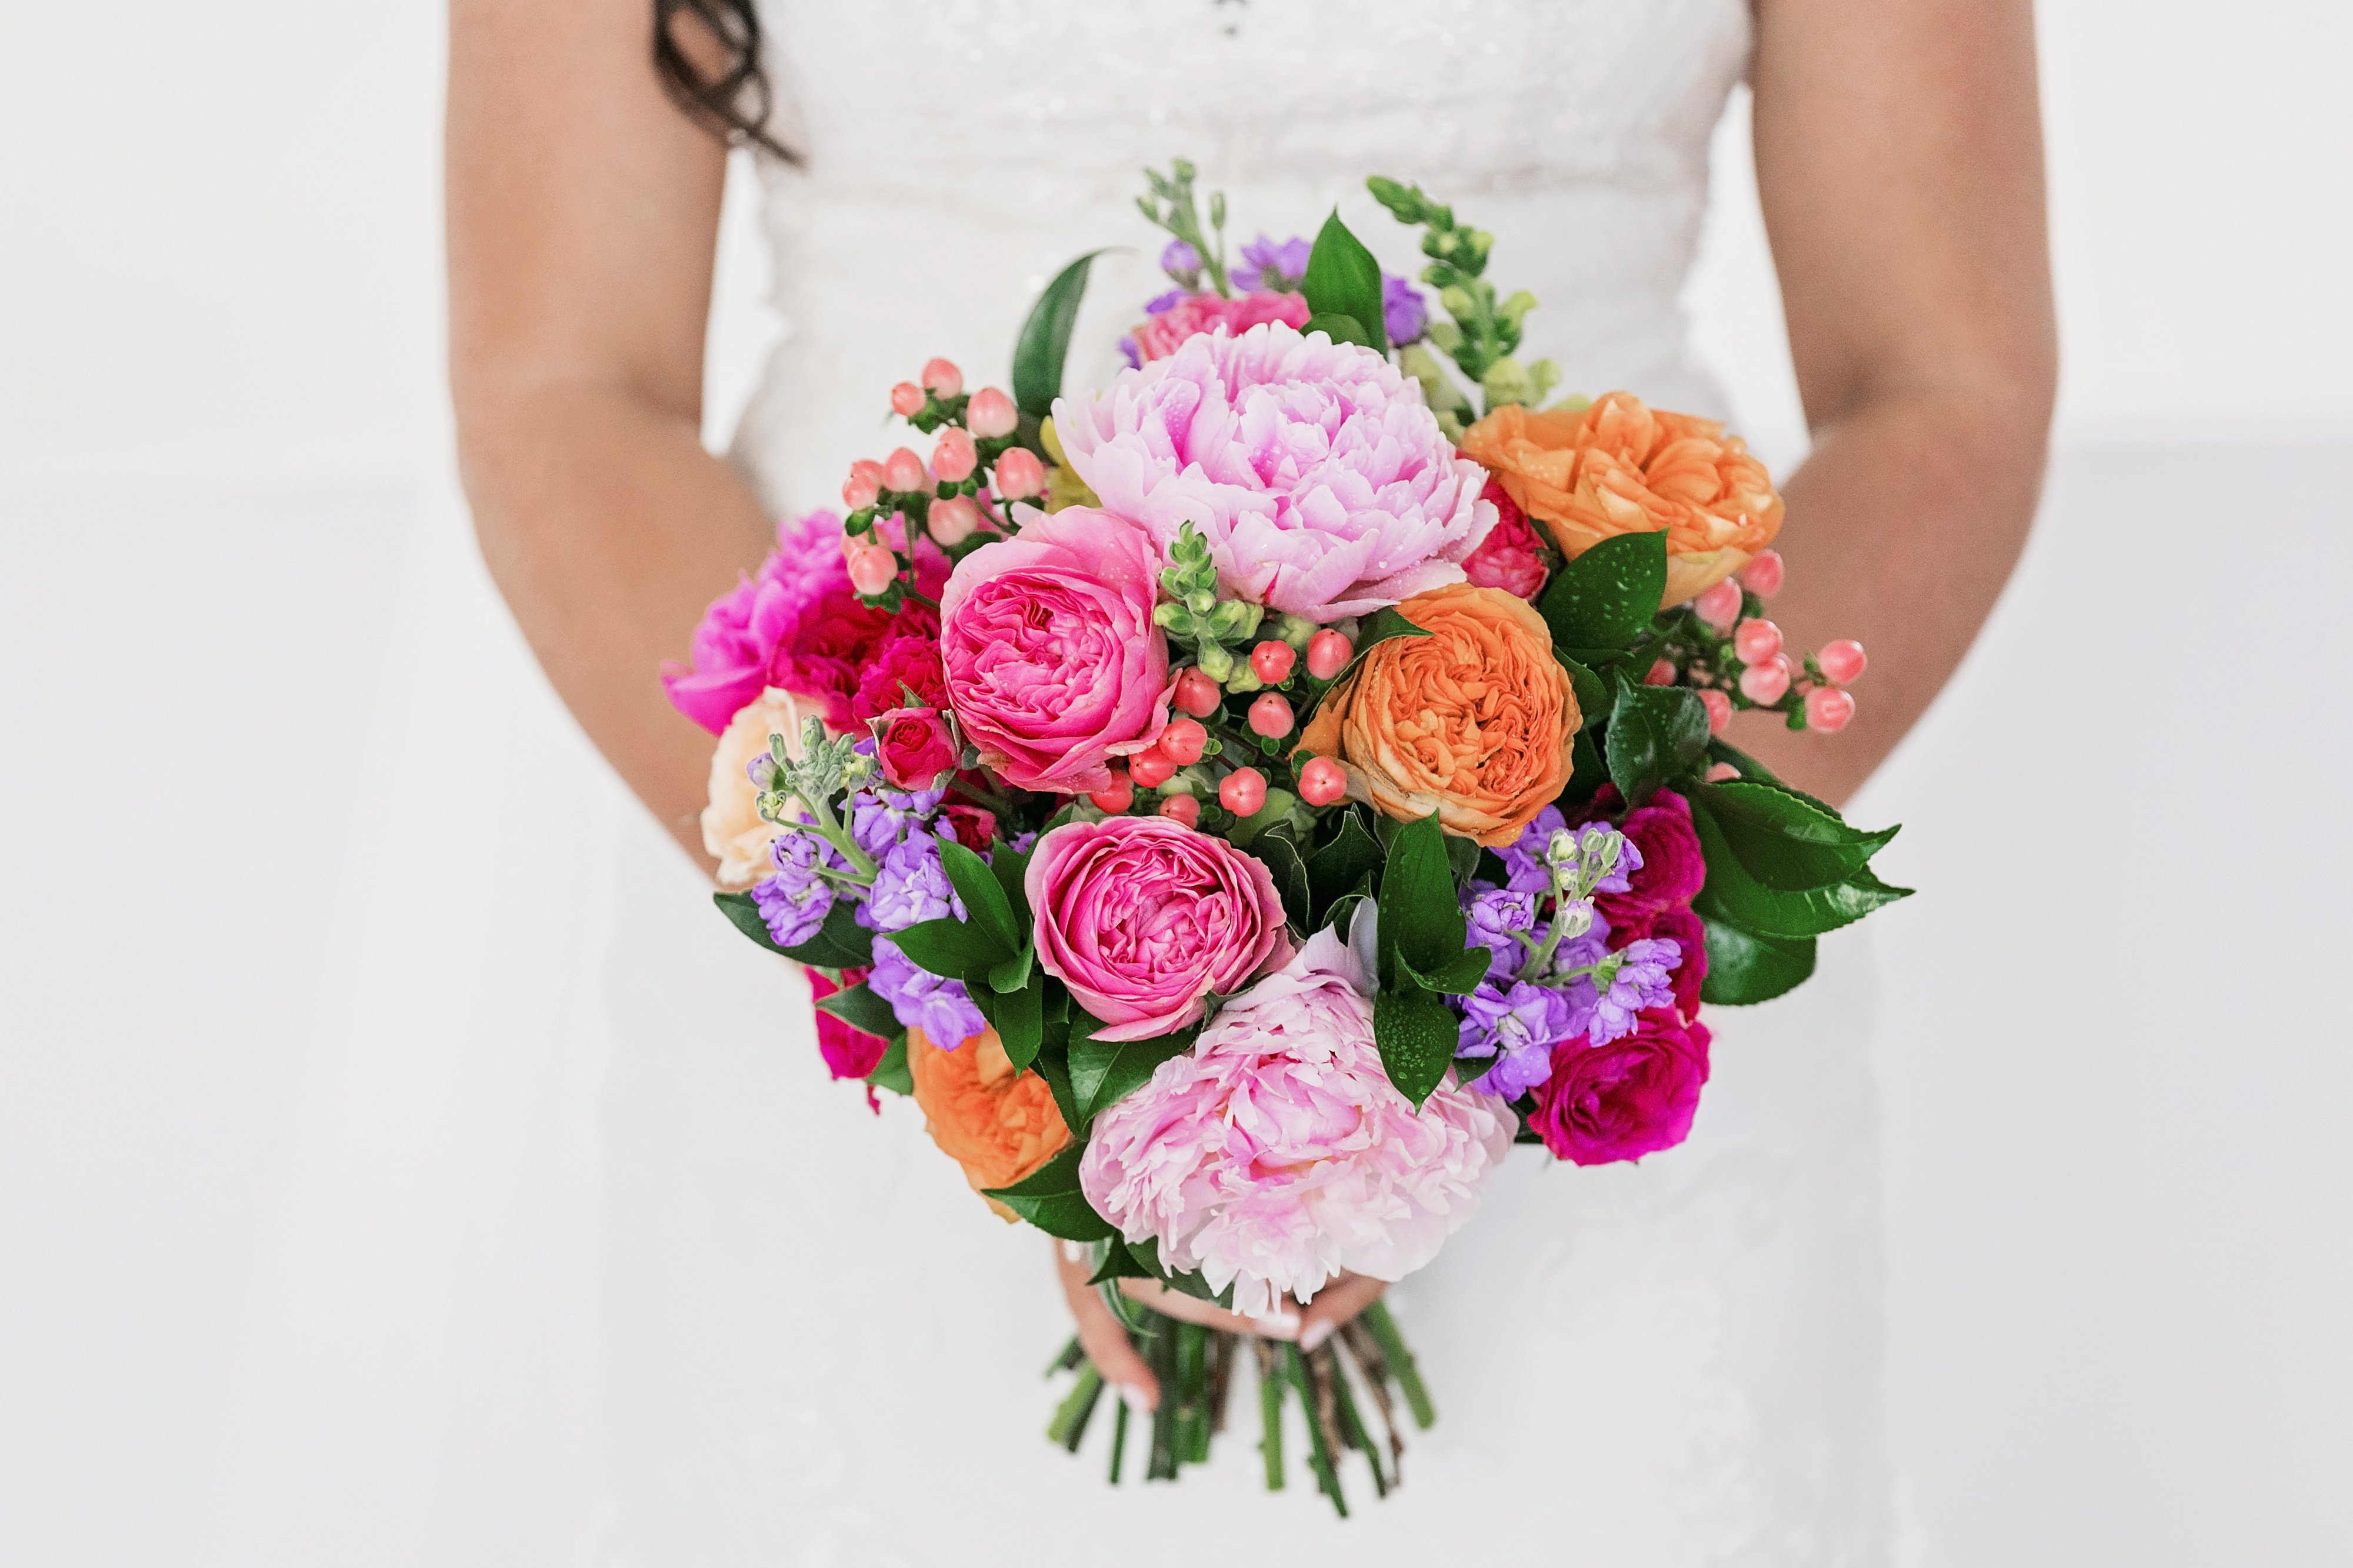 Bright wedding flower bouquet featuring pink peonies